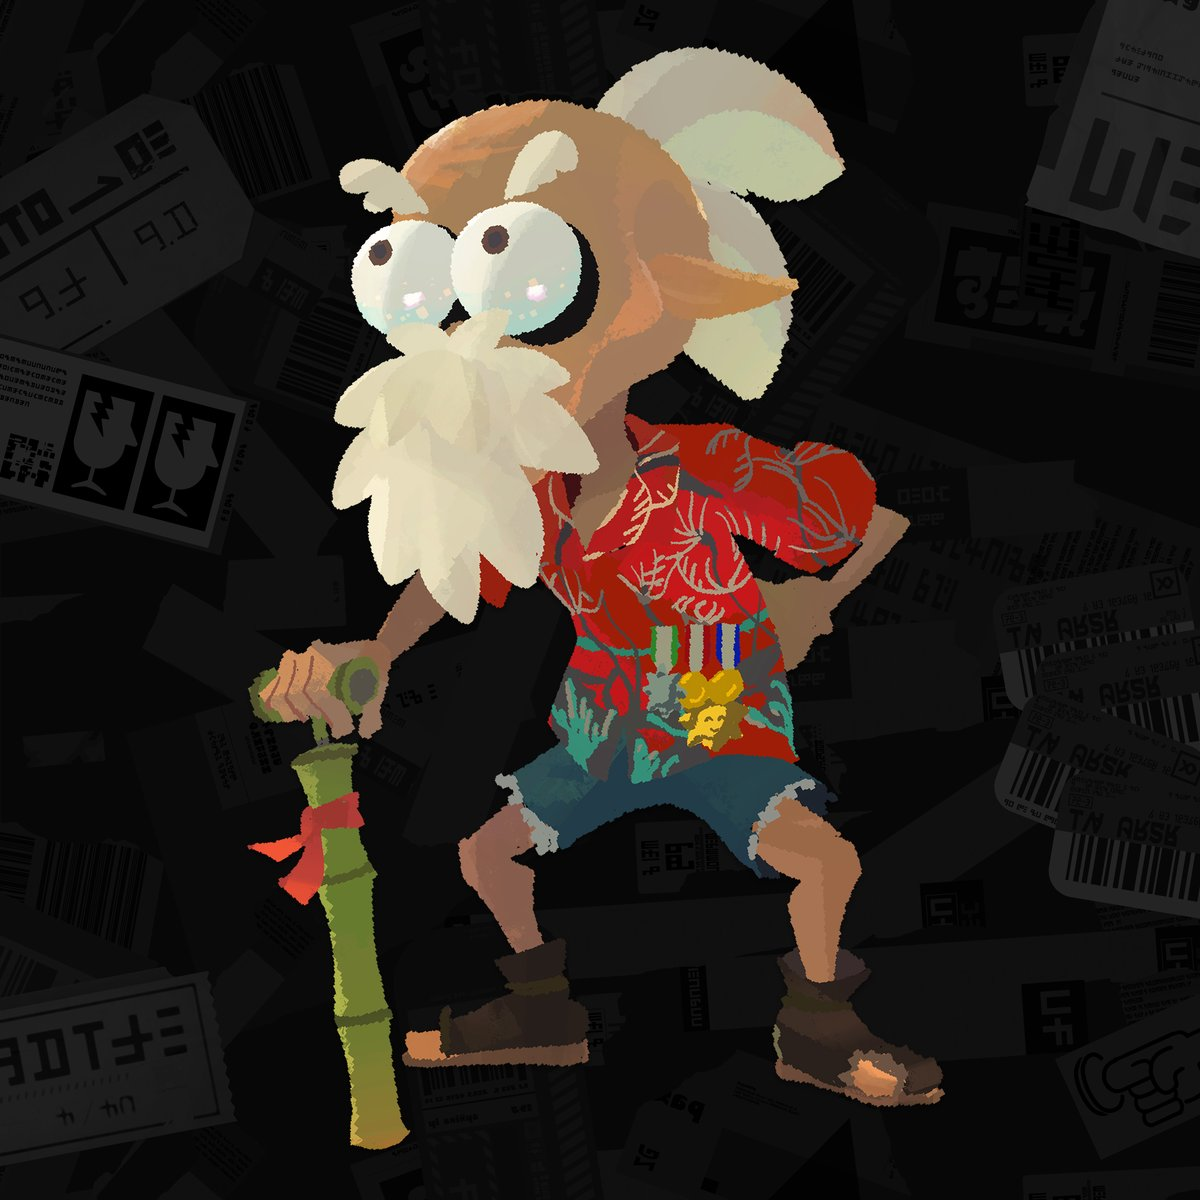 This elderly Inkling is Craig Cuttlefish. He was once captain of the Squidbeak Splatoon and is a true hero of his day. He recently retired from active duty and passed on his captain's hat to a brave new leader. No slouch, he's still patrolling the squid world though. What a guy! https://t.co/3xAzX5JZHP